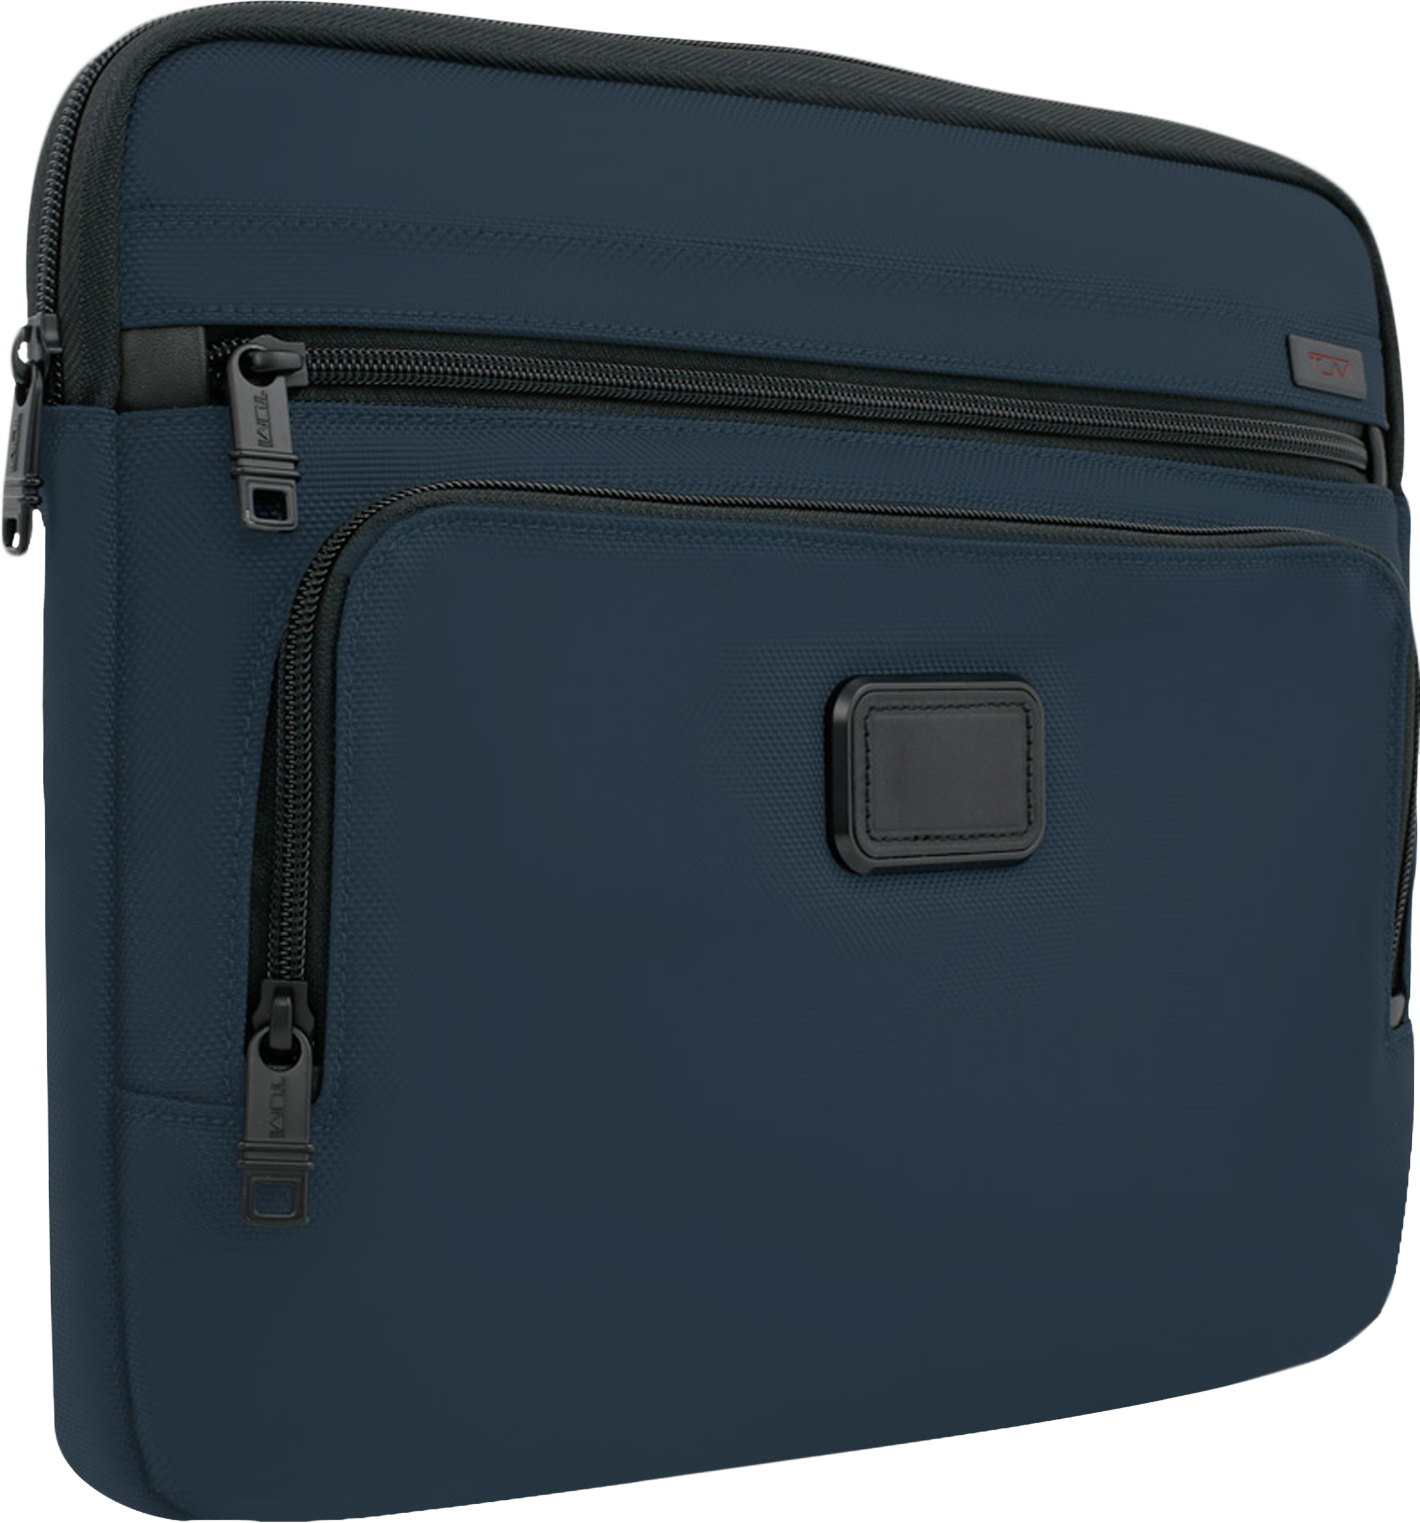 Tumi Tablet Cover for Suface Pro (Ballistic Nylon Navy)